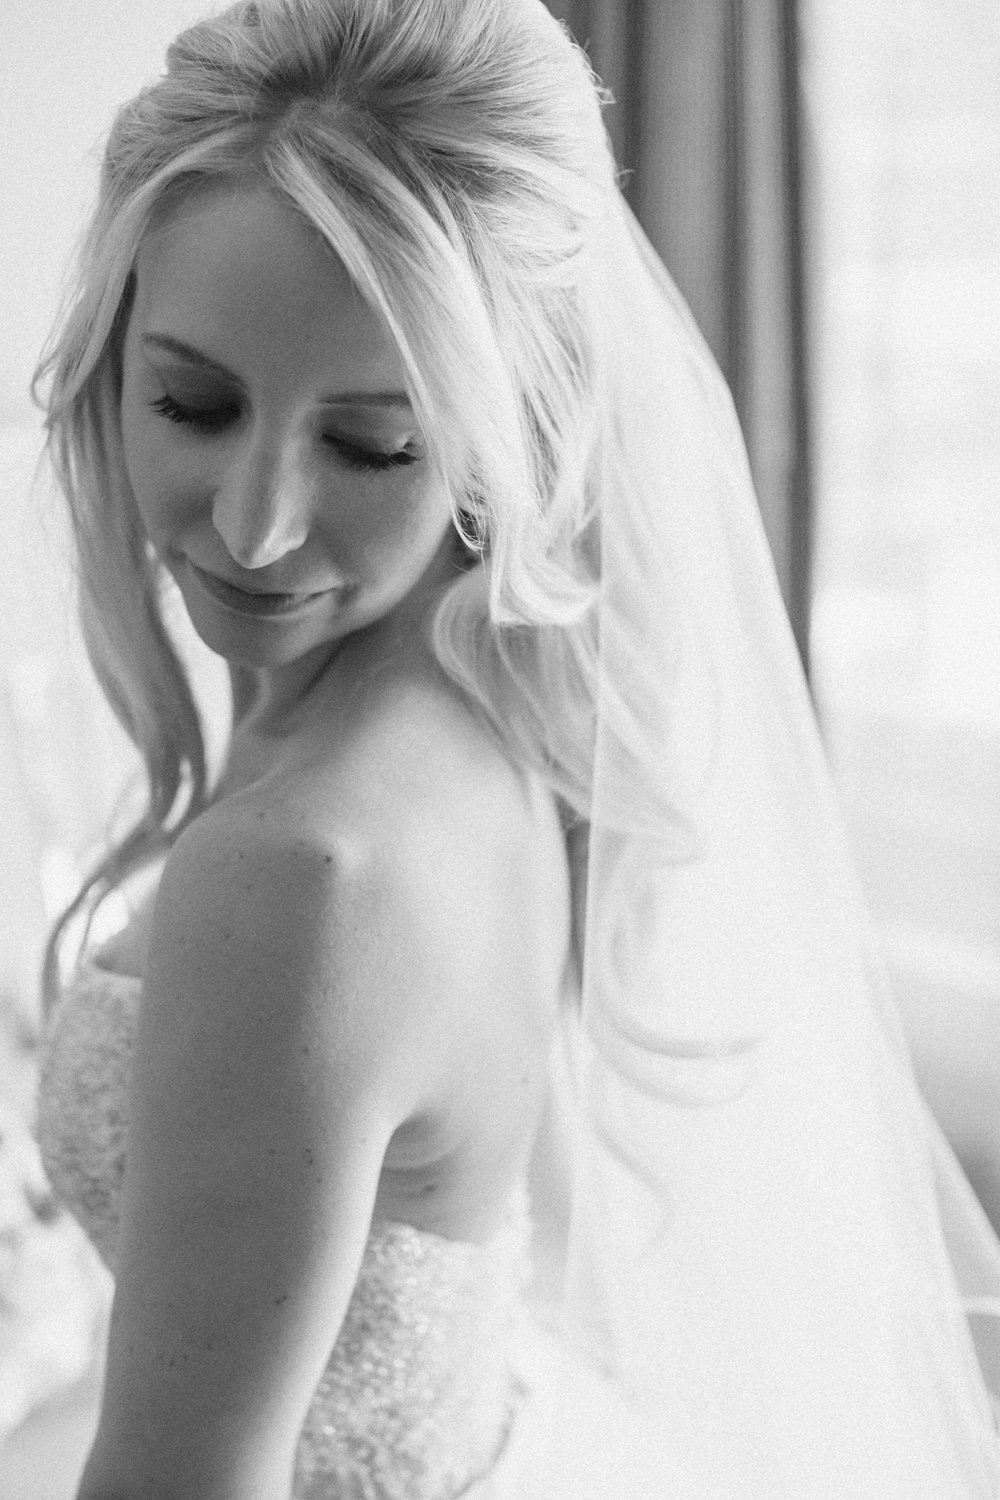 NYC Wedding Photography Sofitel Central Park Brooklyn Photographer Boris Zaretsky _B2C1920.jpg